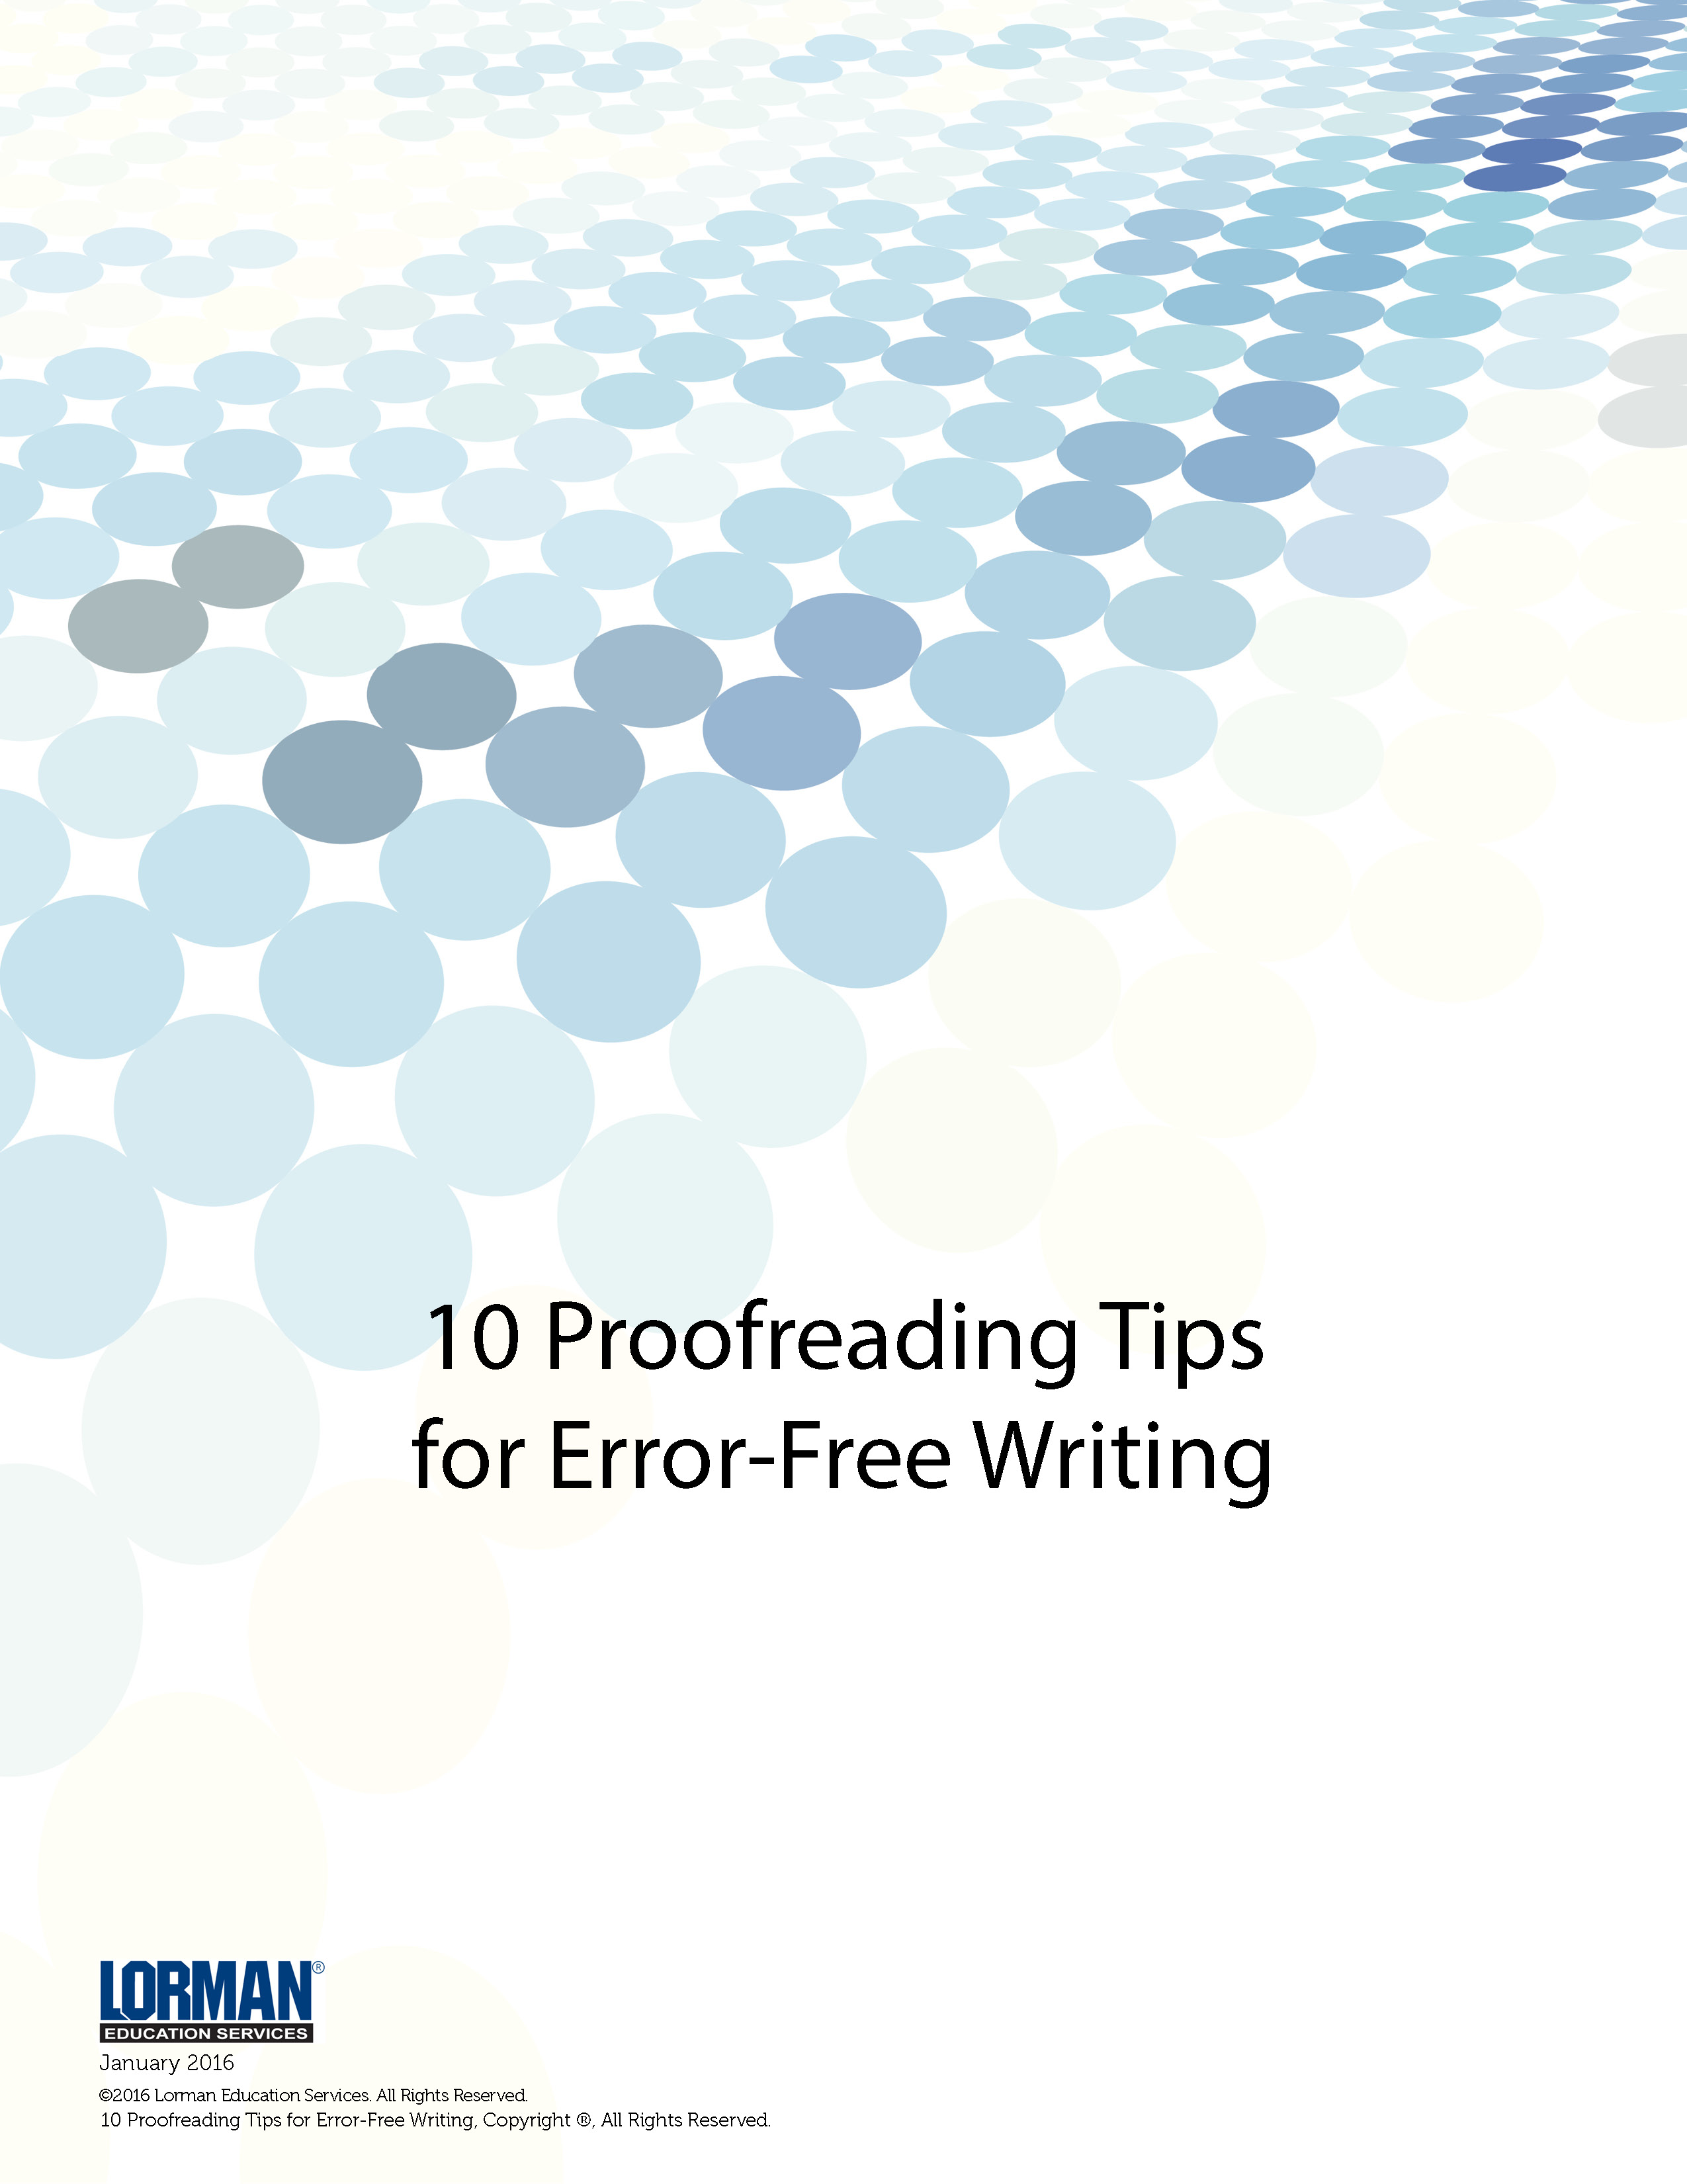 10 Proofreading Tips for Error-Free Writing